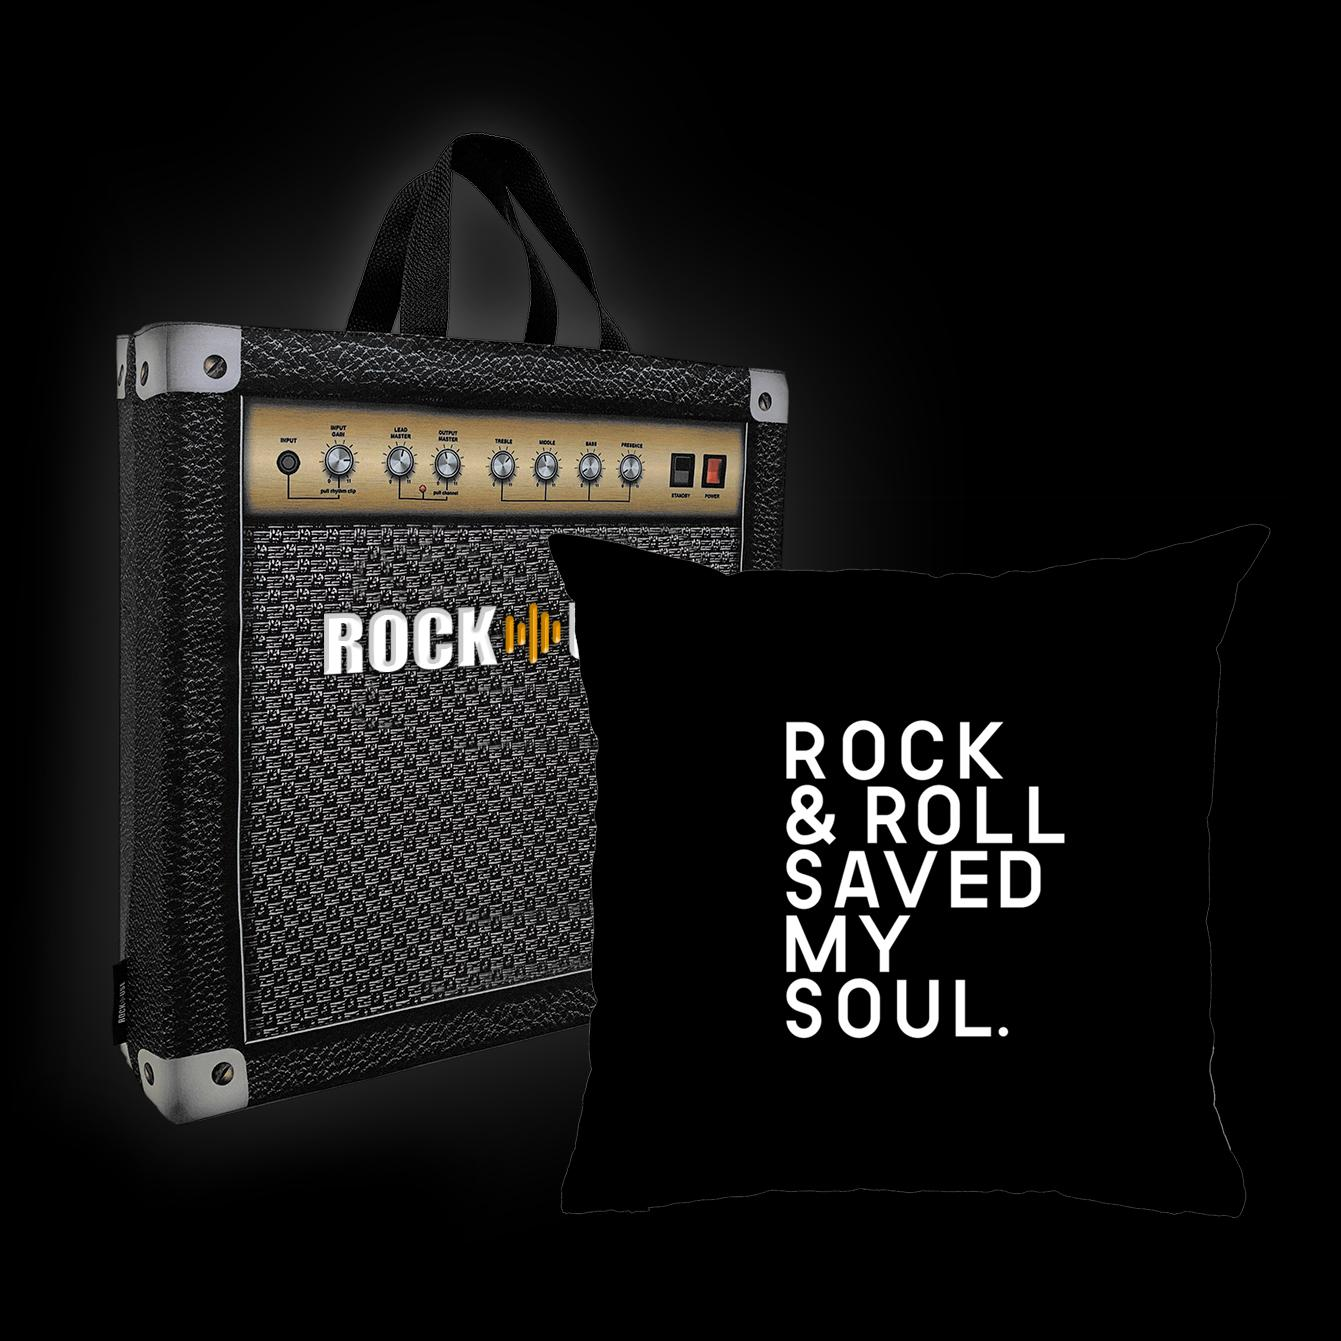 Almofada Rock Use - Rock & Roll saved my soul (Preto)